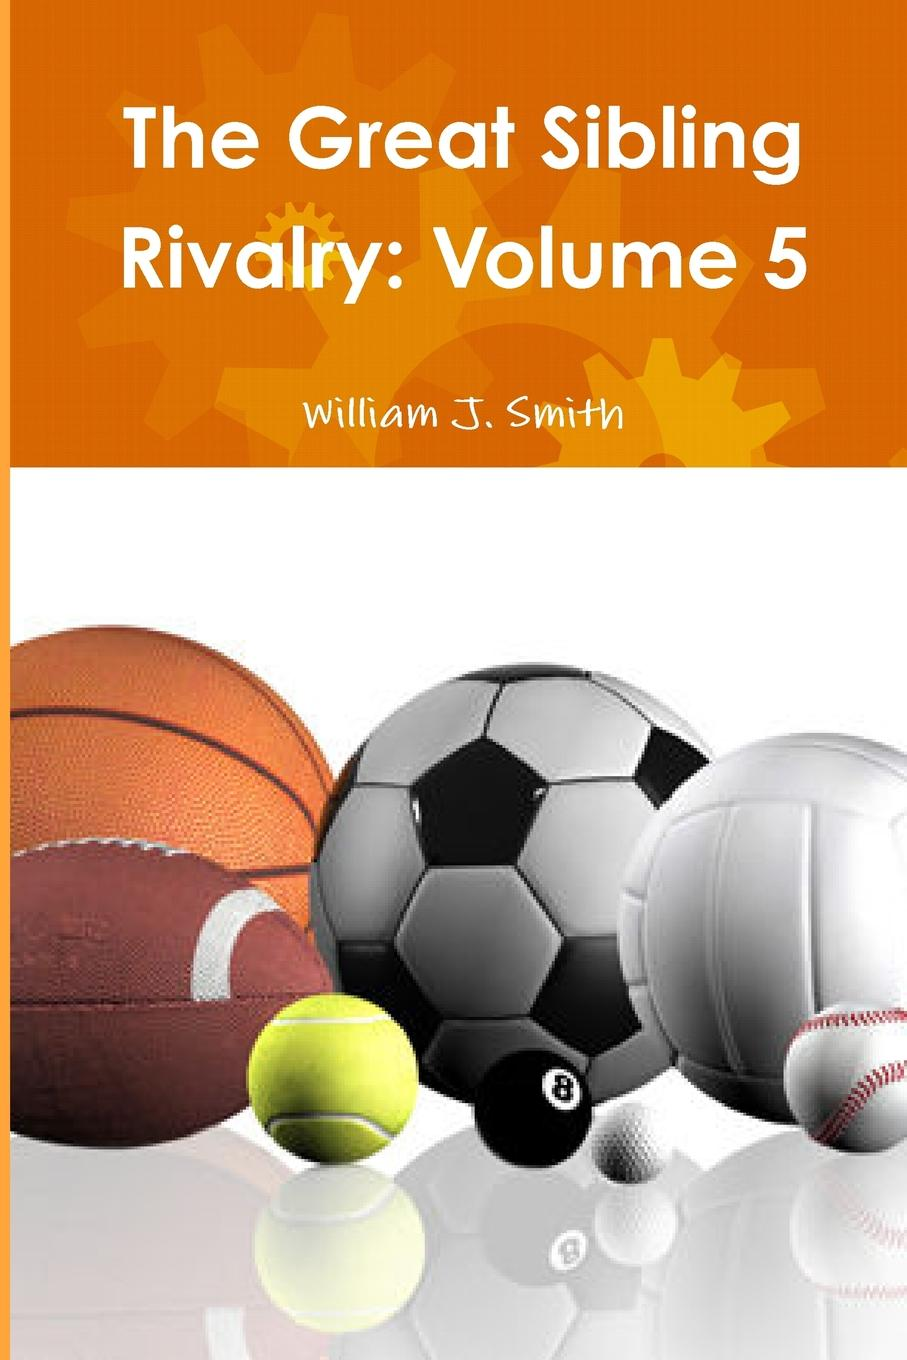 лучшая цена William J. Smith The Great Sibling Rivalry. Volume 5